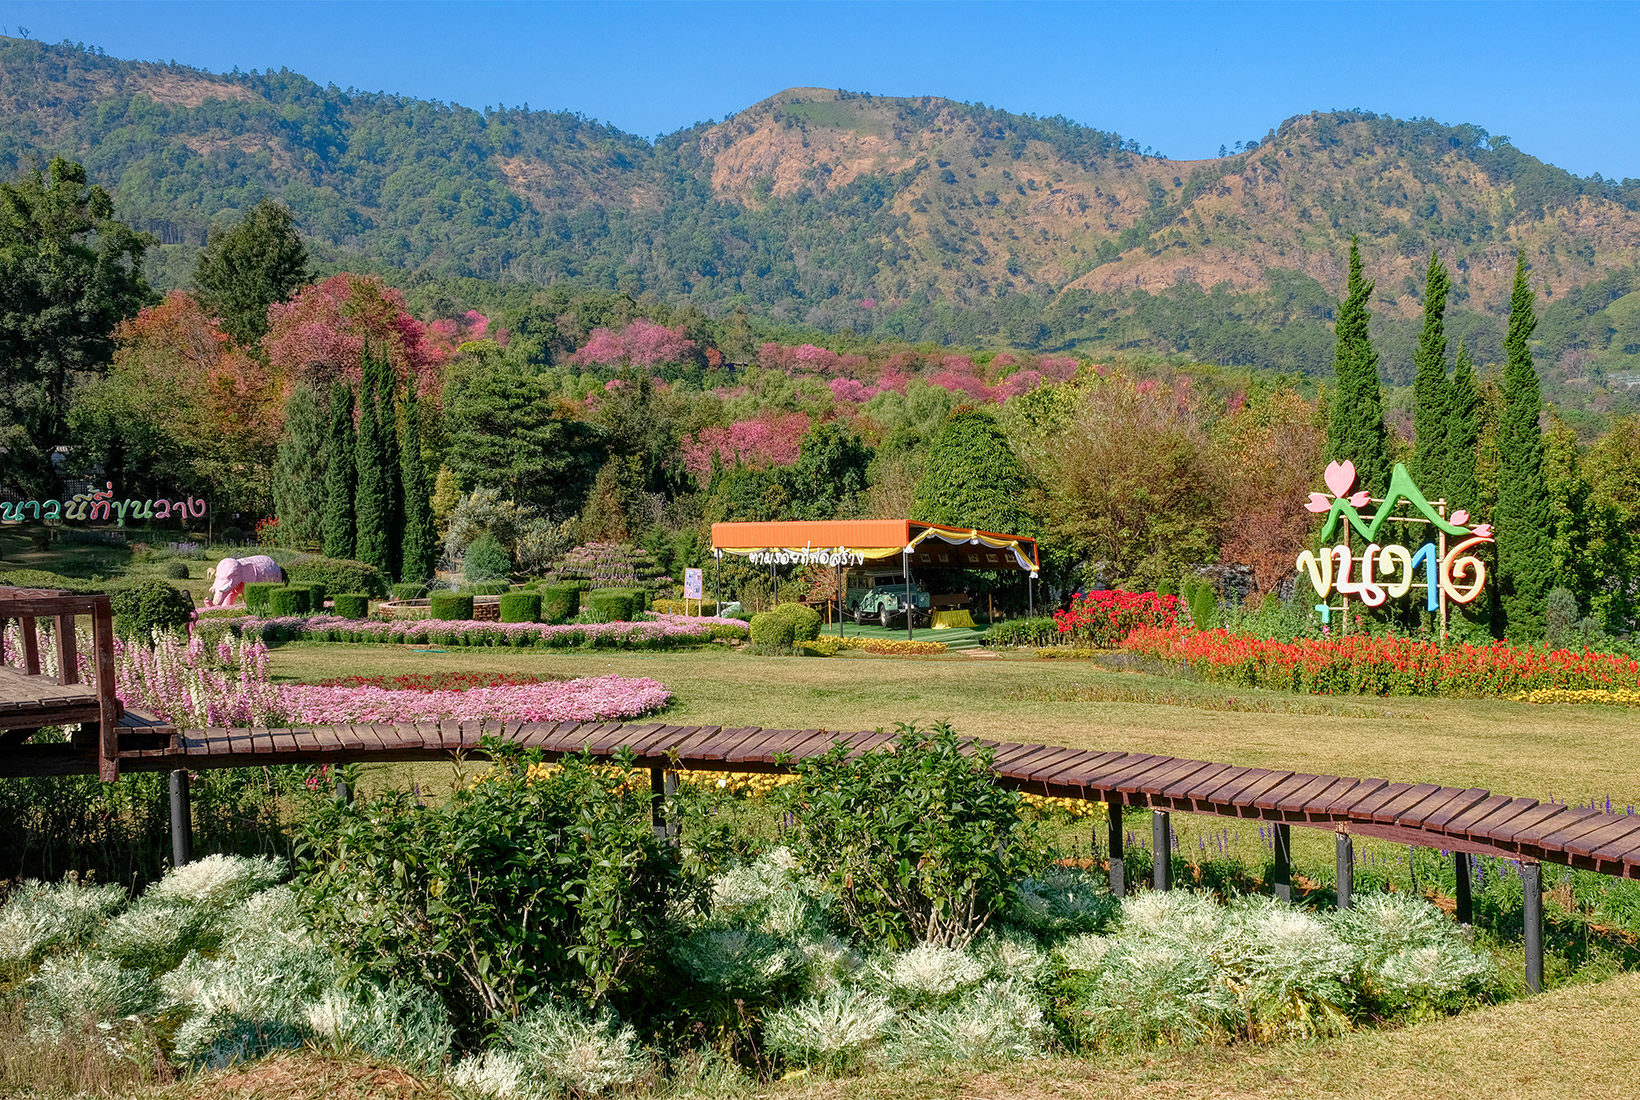 Formal gardens at the Royal Agricultural Research Center in Doi Inthanon National Park in northern Thailand